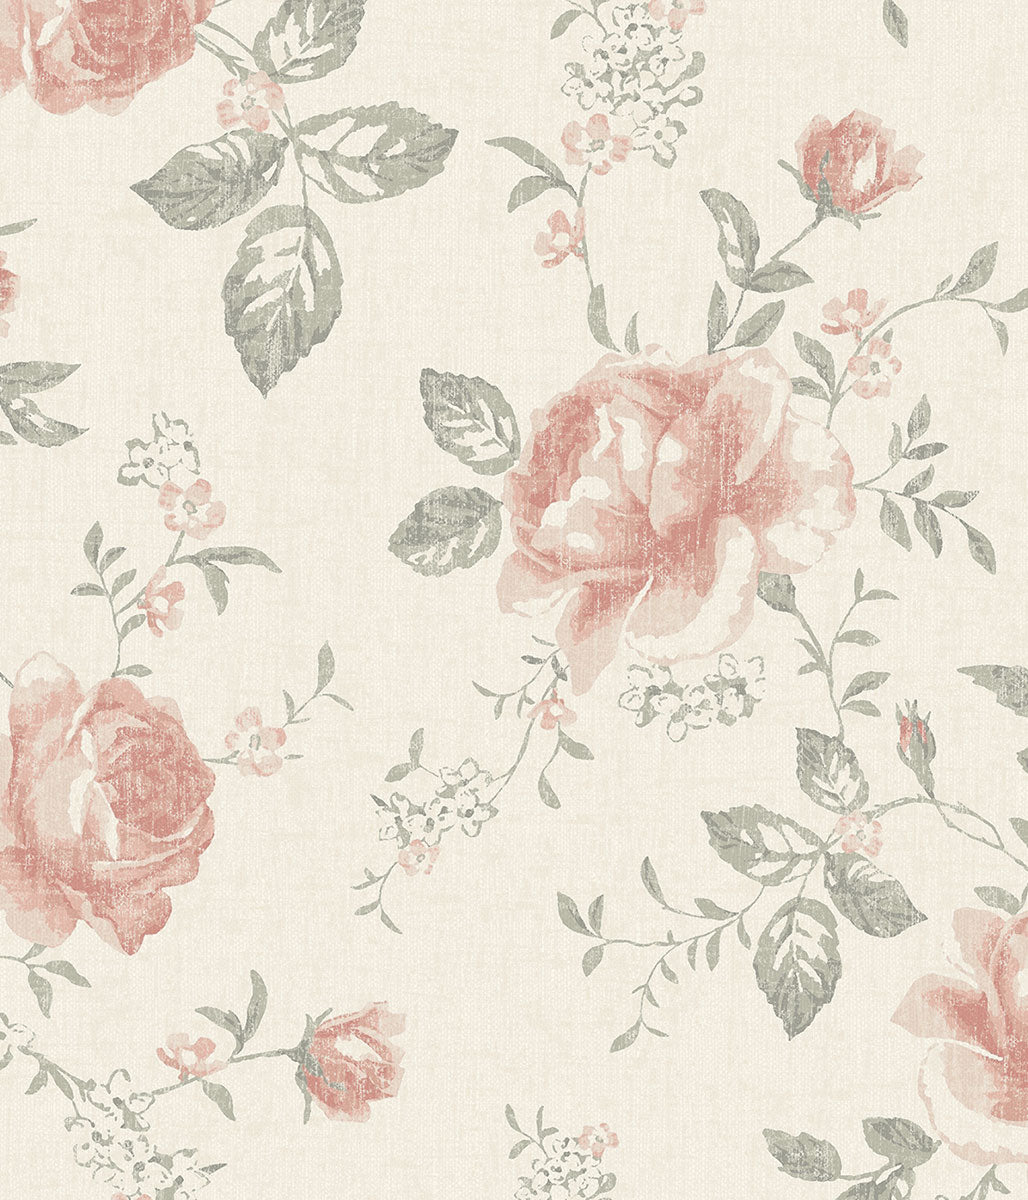 Rose Garden large mural wallpaper